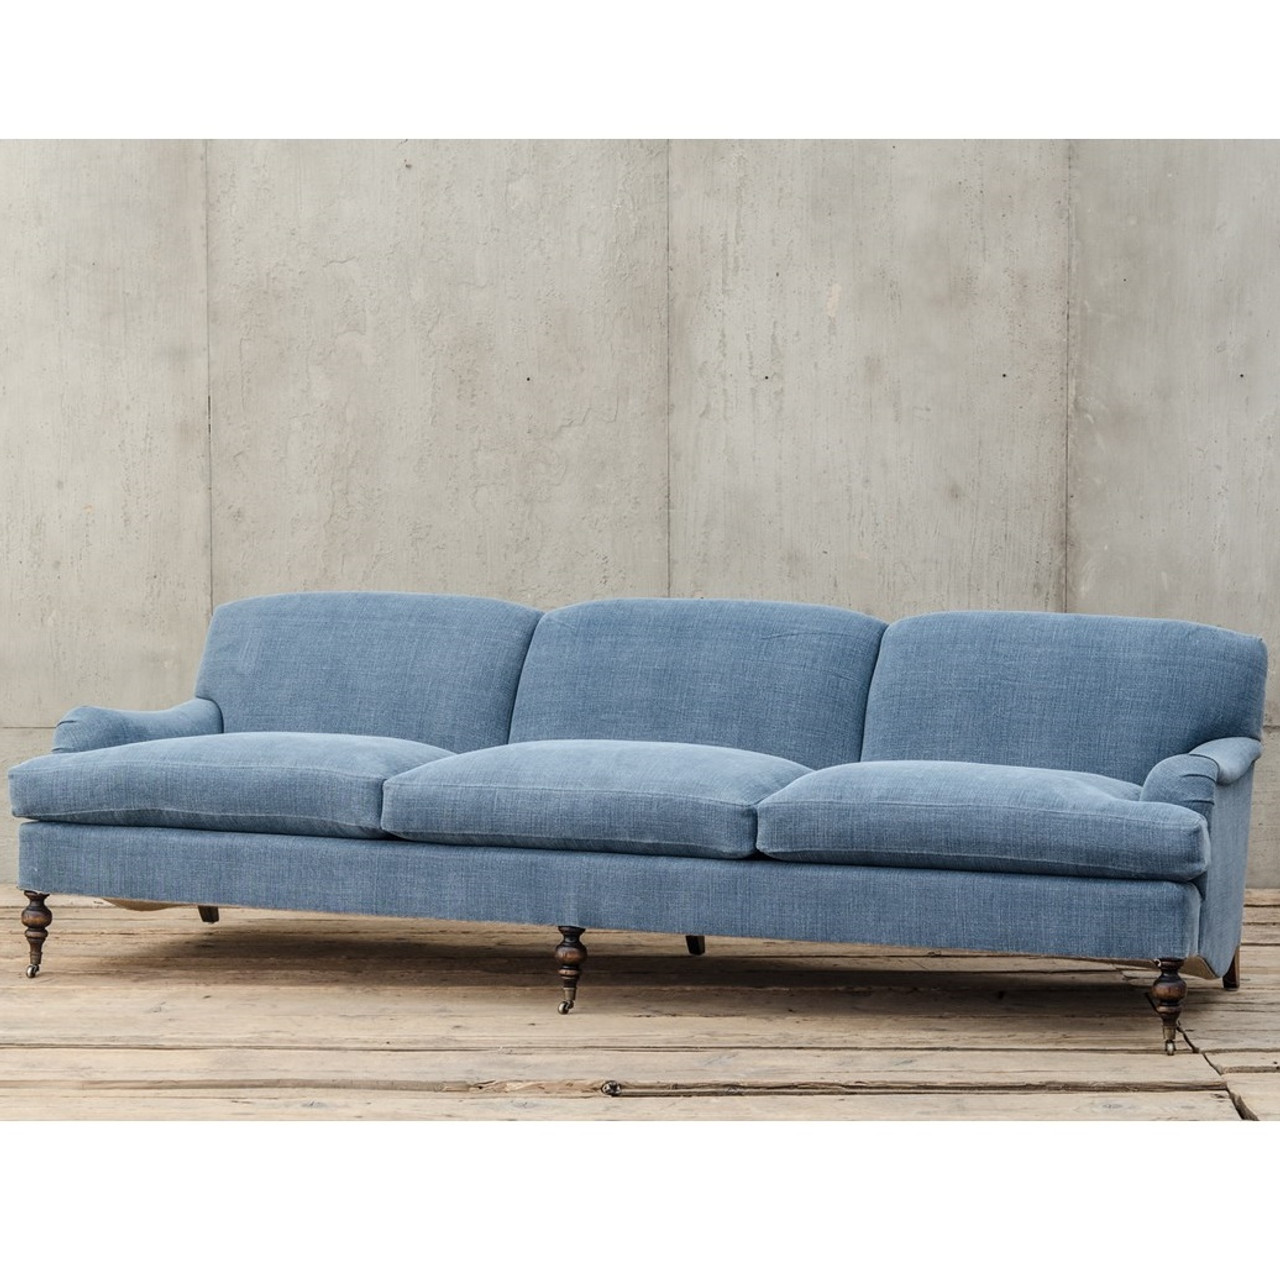 english roll arm sofa Professor Plum's Blue Linen Upholstered English Roll Arm Sofa  english roll arm sofa